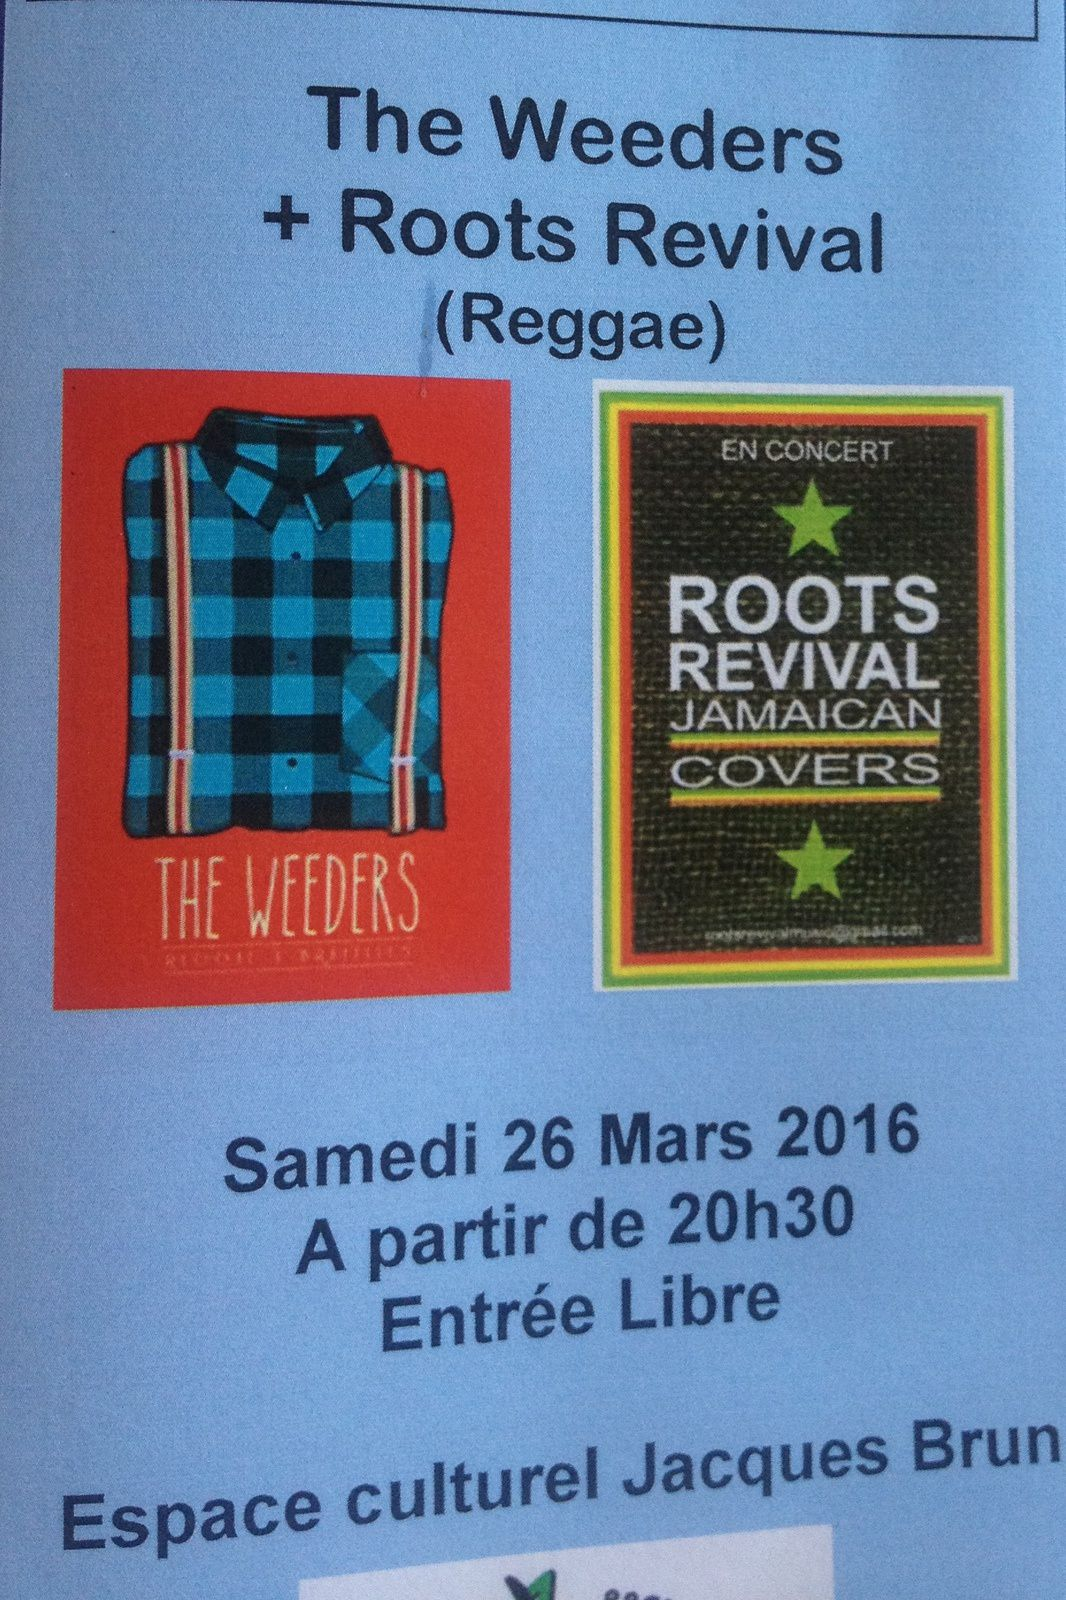 The Weeders + Roots Revival jamaicain  Covers  concert reggae egliseneuve-pres-billom